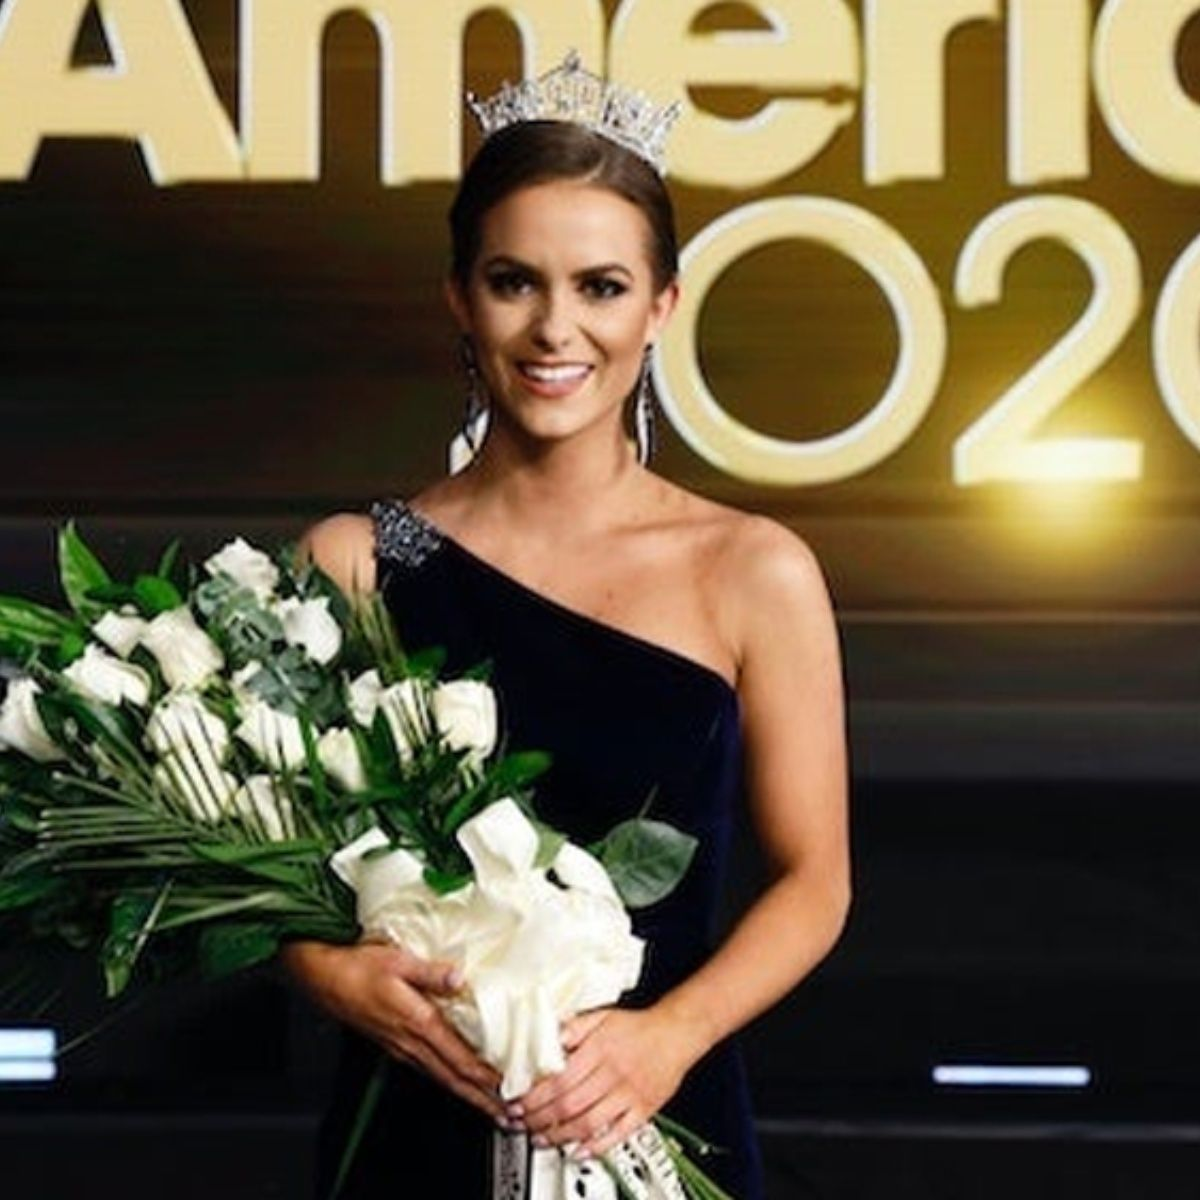 La flamante Miss America